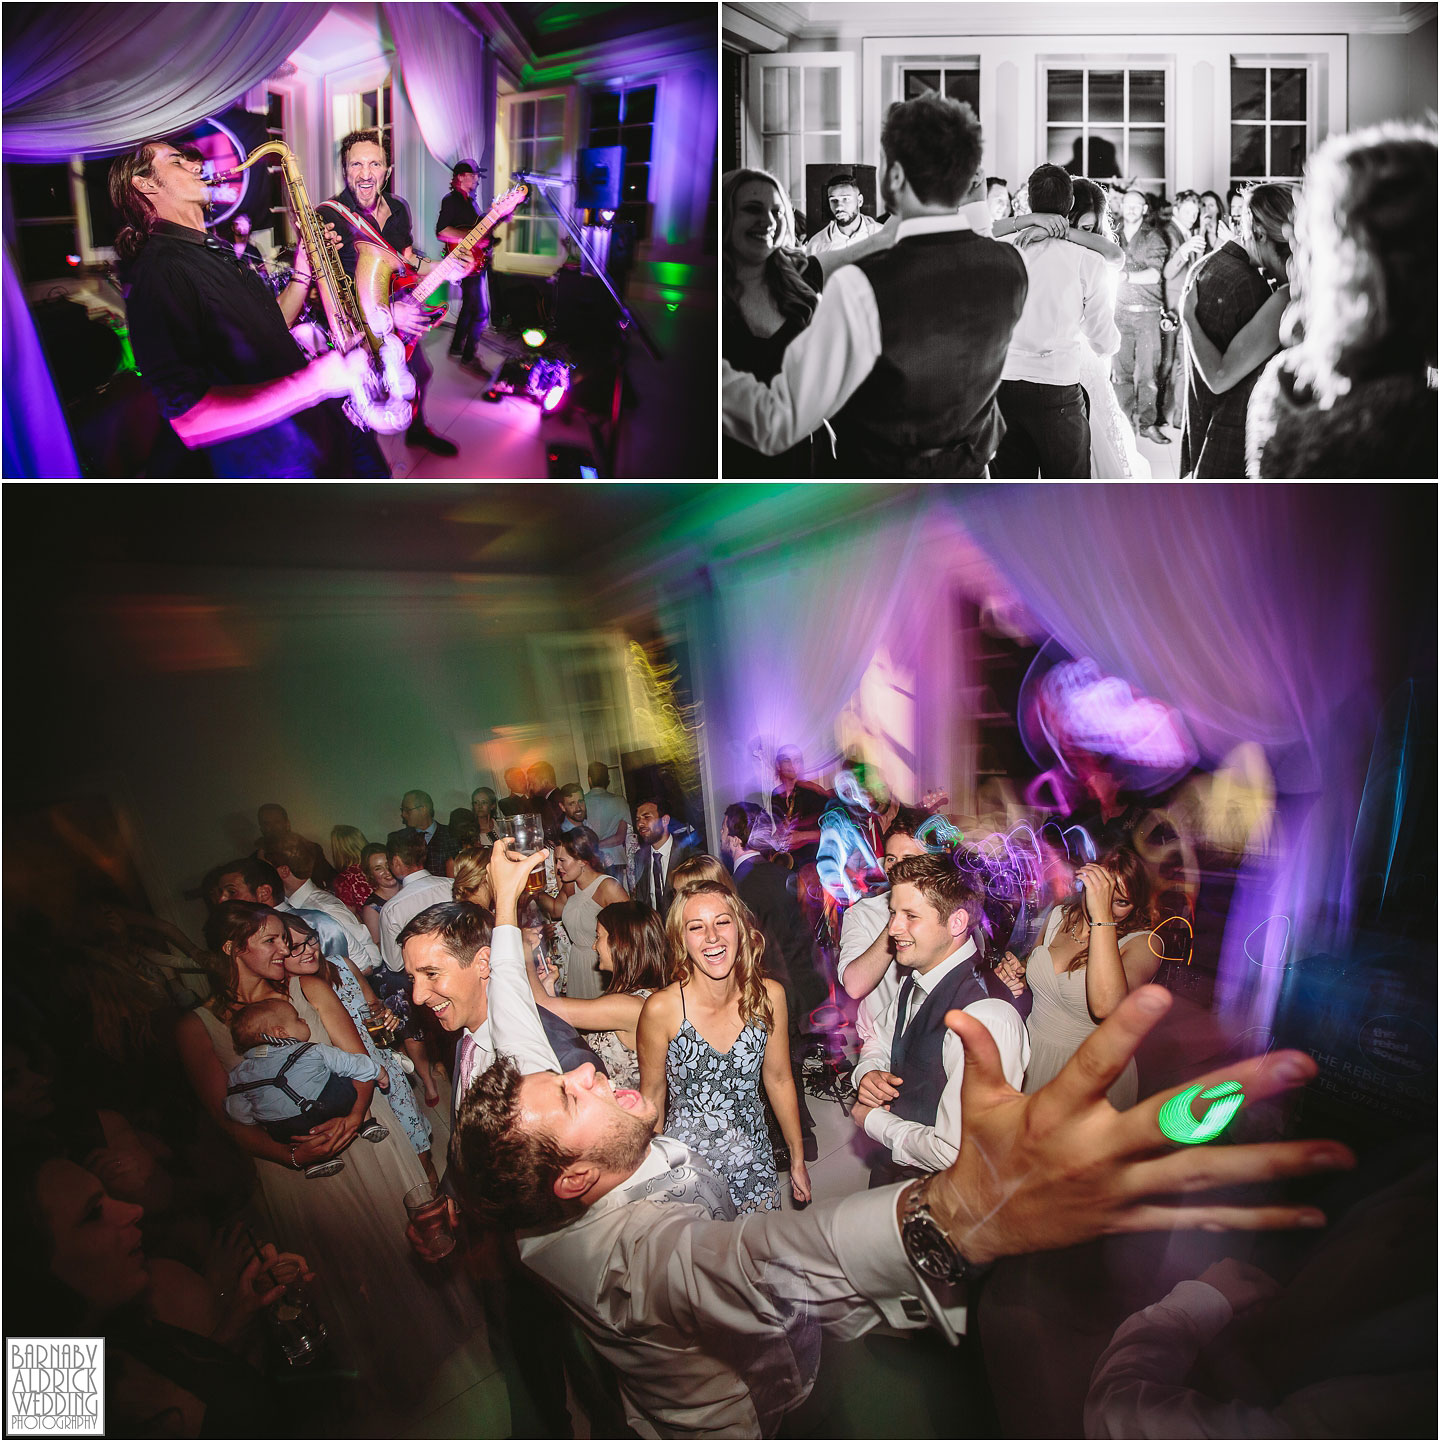 Evening Party Photos at Saltmarshe Hall near Goole in East Yorkshire, Wedding photography at Saltmarshe Hall, East Yorkshire Wedding Photographer Barnaby Aldrick